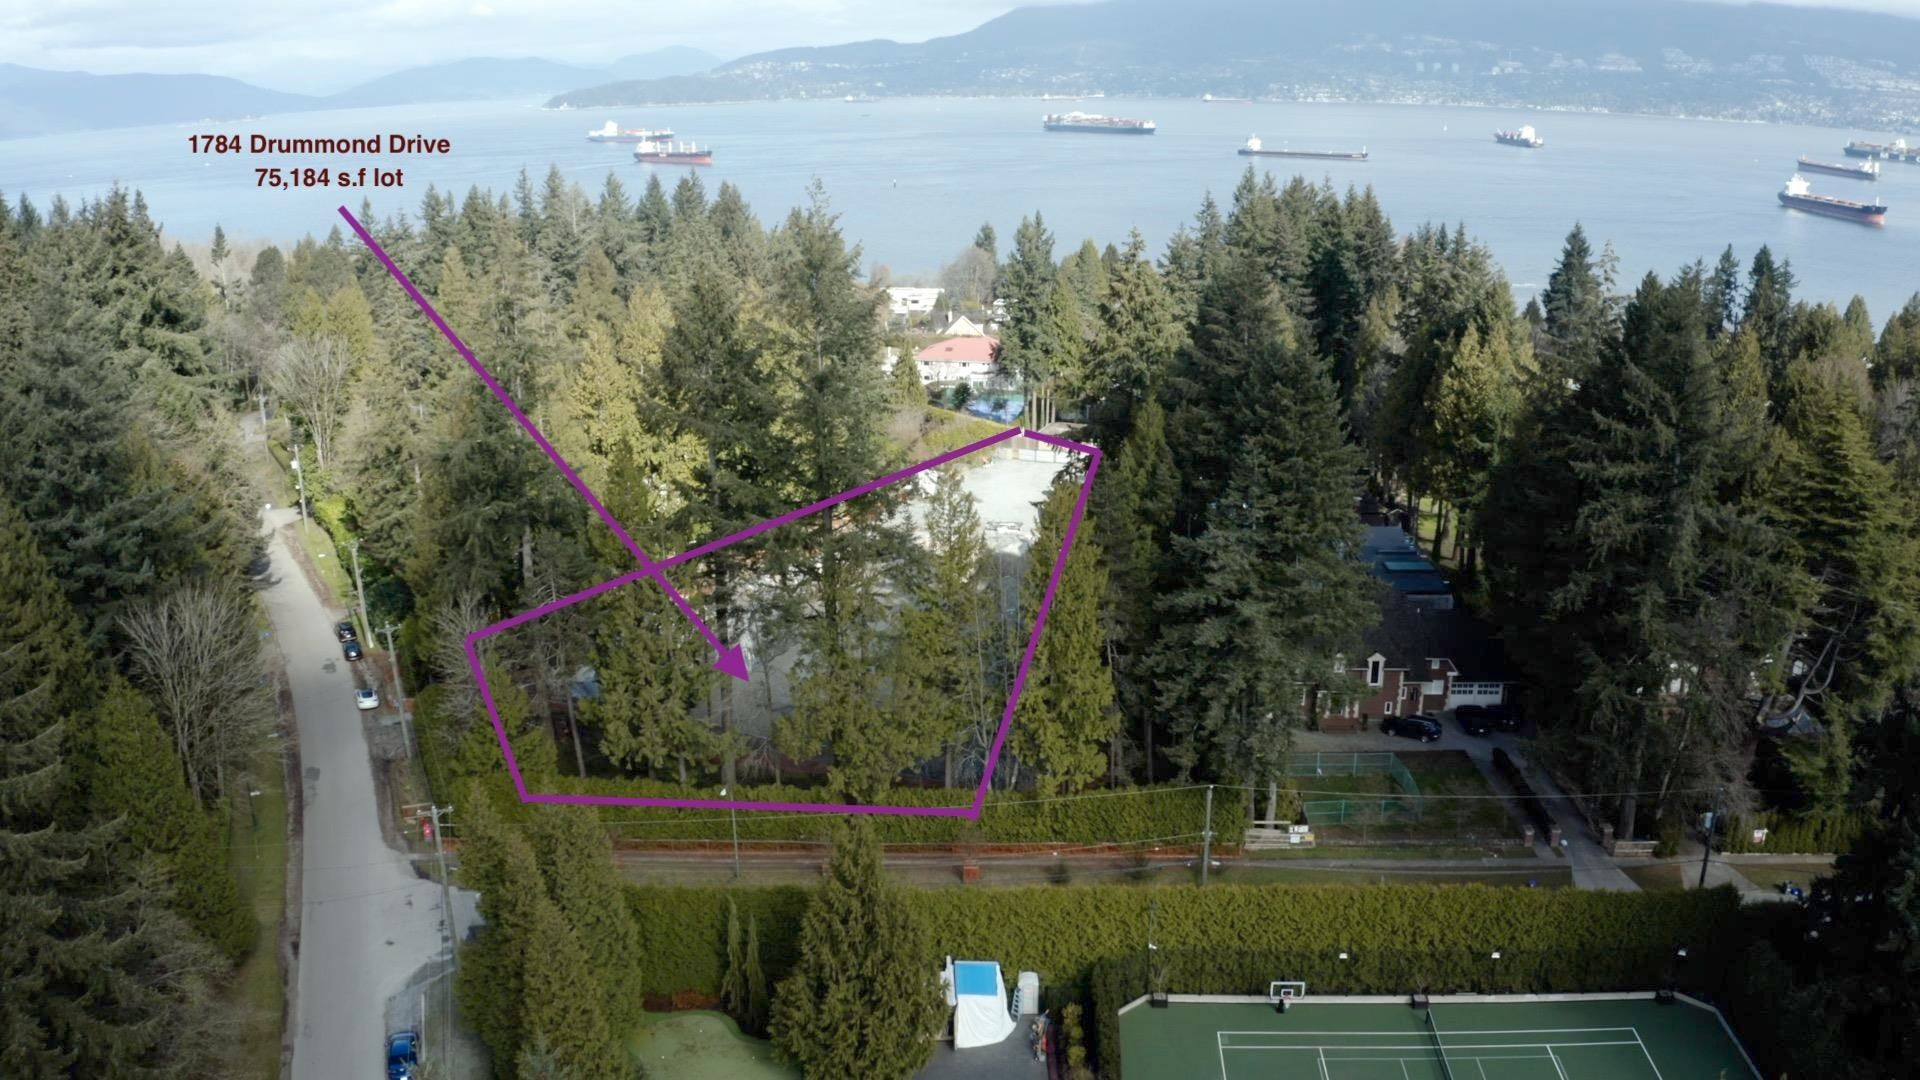 """Main Photo: 1784 DRUMMOND Drive in Vancouver: Point Grey House for sale in """"Point Grey"""" (Vancouver West)  : MLS®# R2624427"""